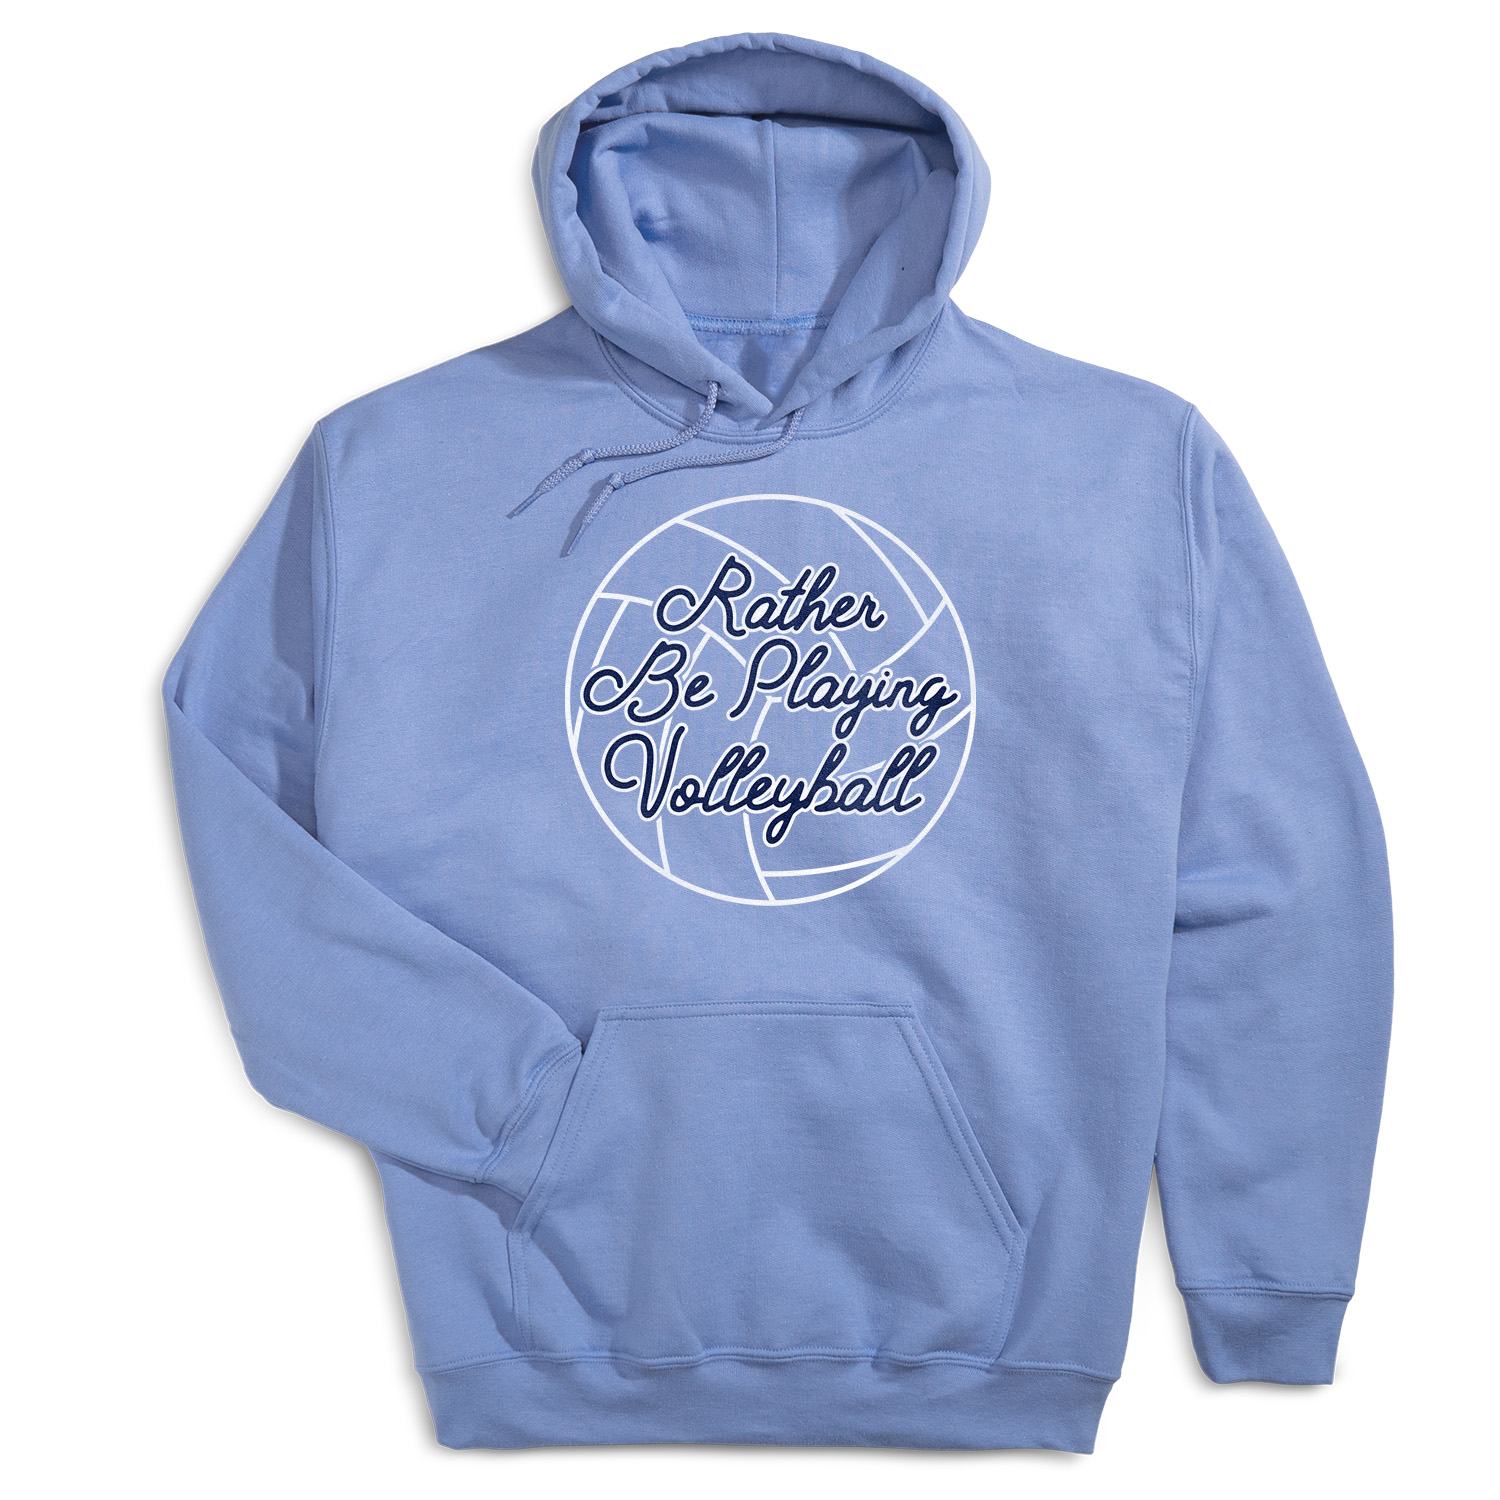 Volleyball Hooded Sweatshirt - I'd Rather Be Playing Volleyball